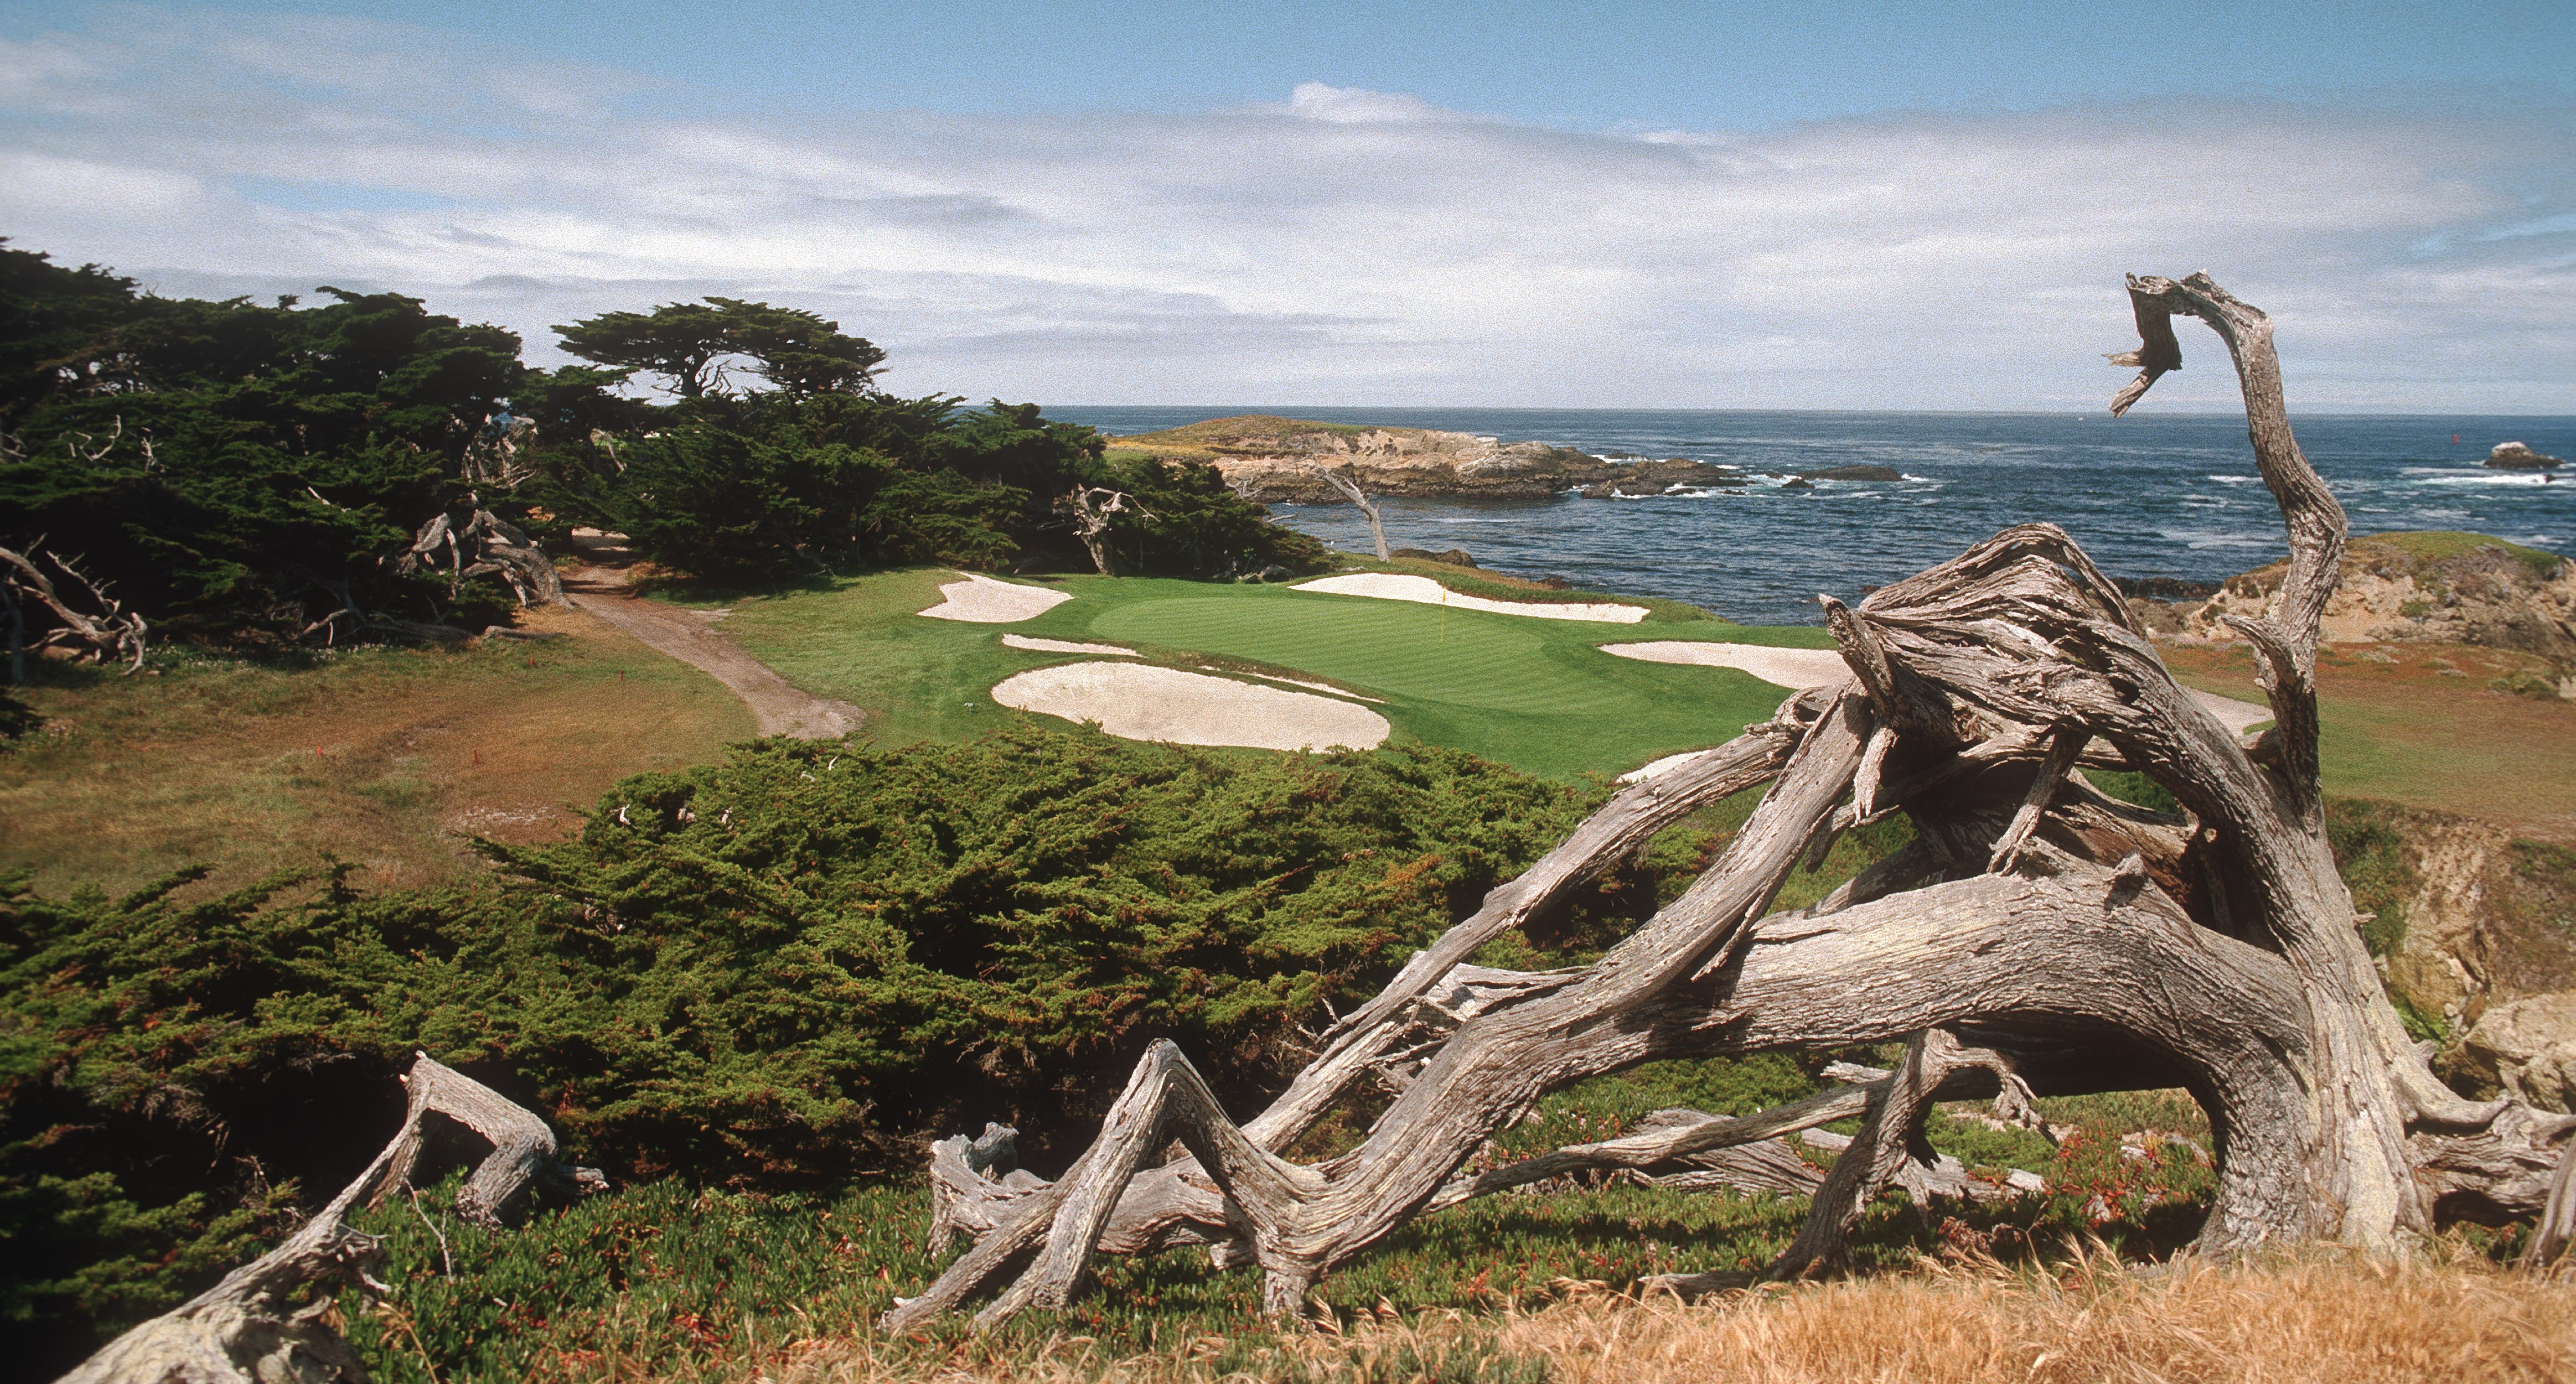 The 15th hole of the Cypress Point Golf Course in California, circa 1999. (Photo by Phil Sheldon/Popperfoto/Getty Images)